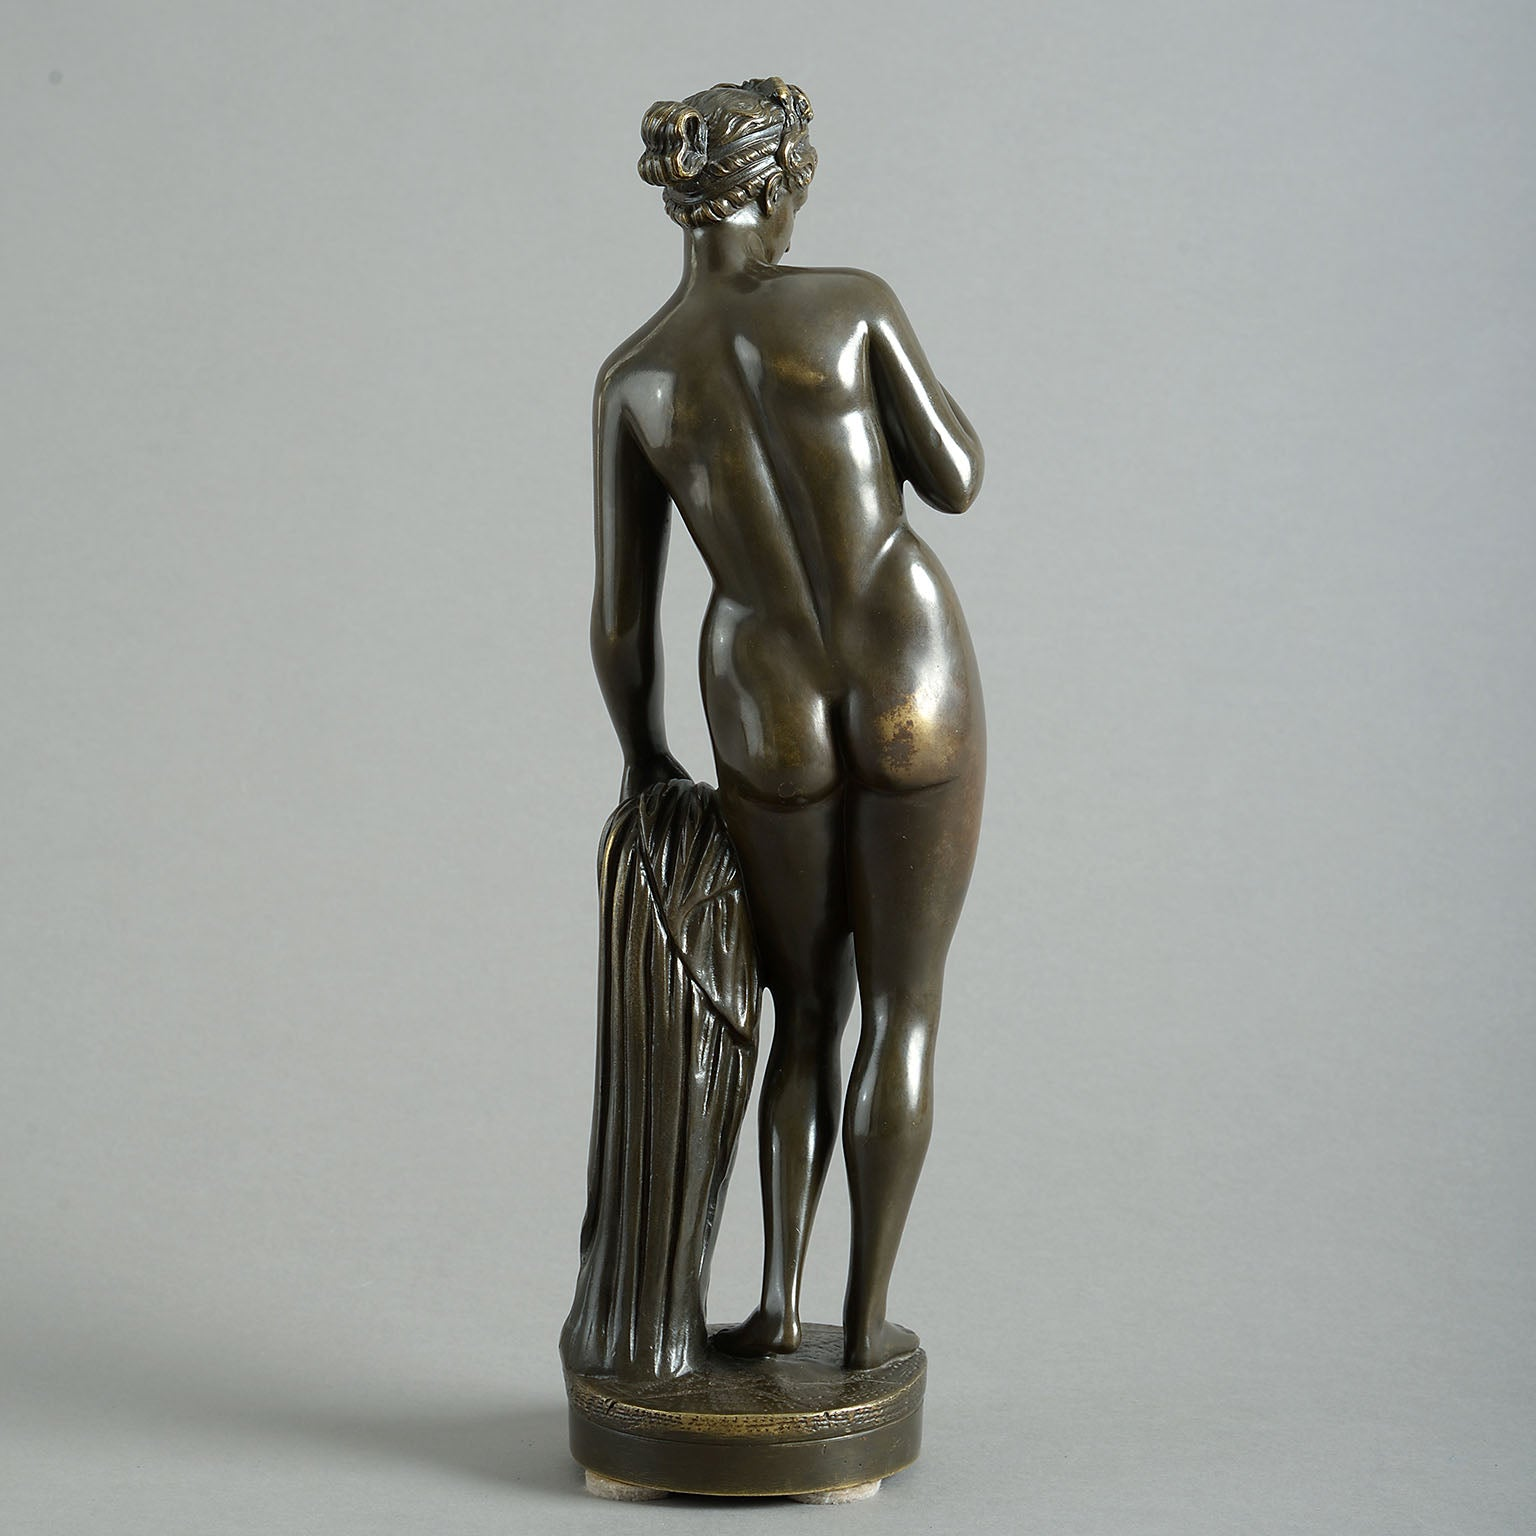 Bronze figure, after Bertel Thorvaldsen, Venus with Eris's Apple